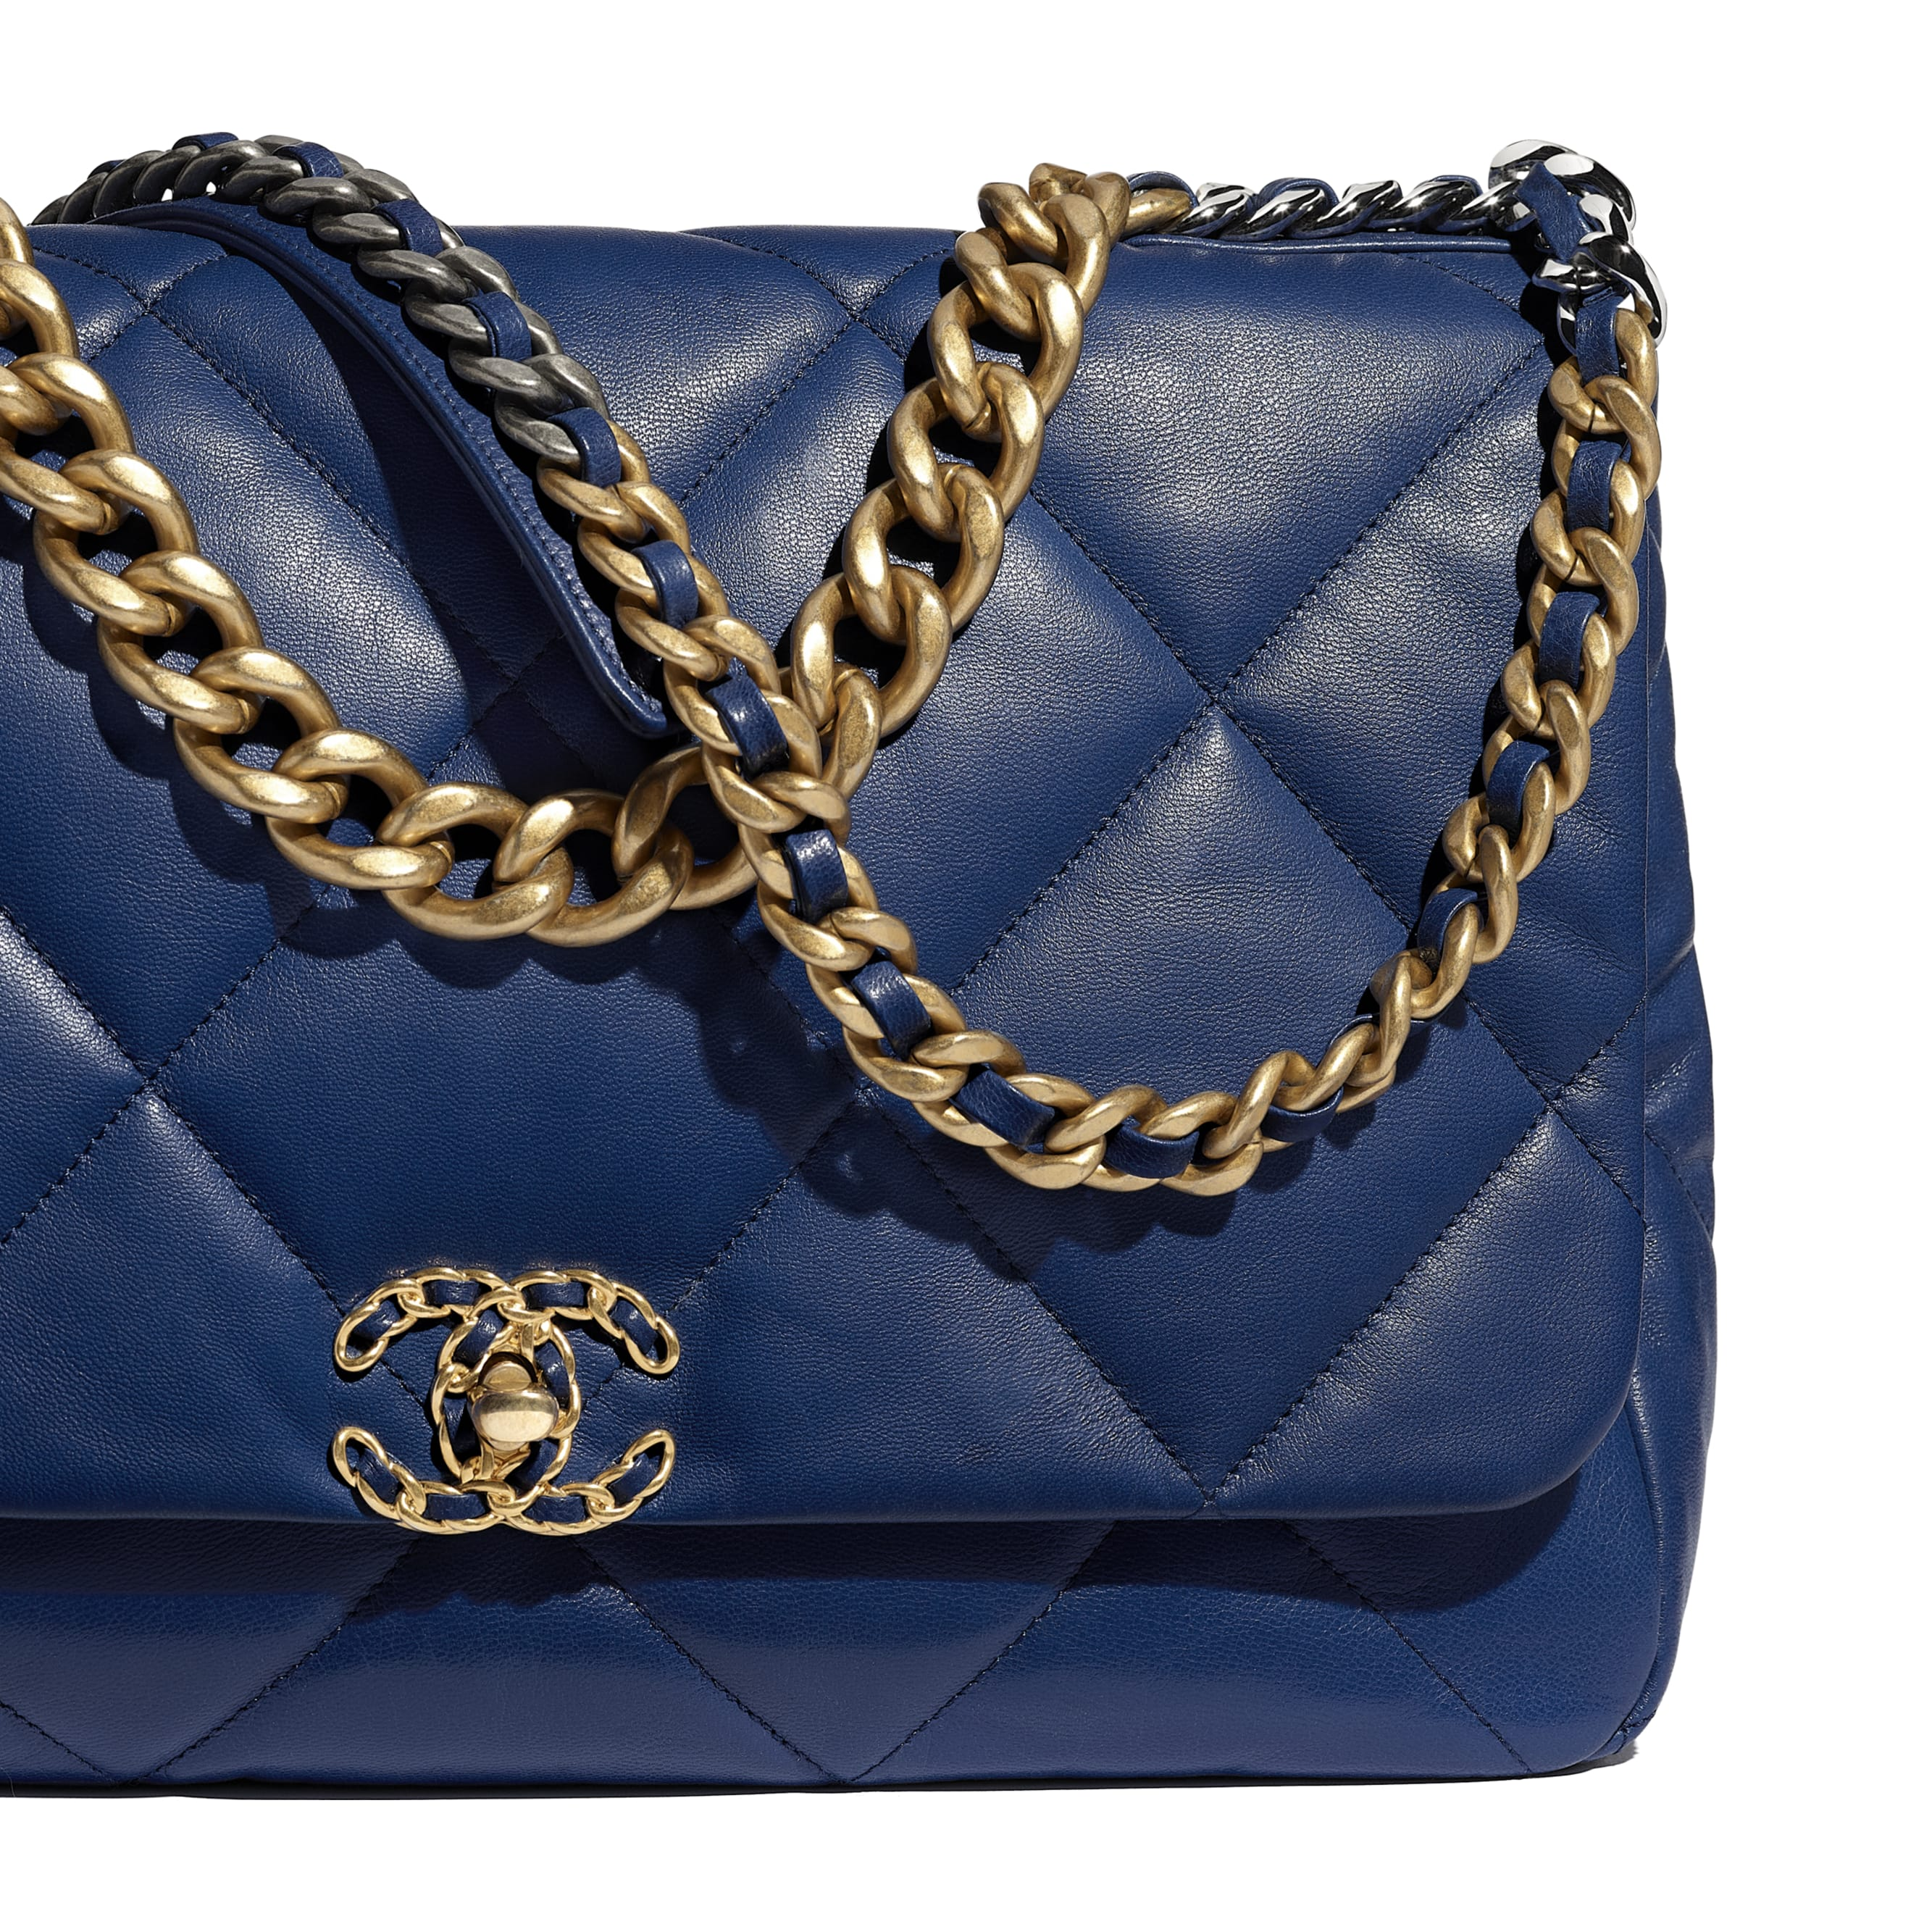 CHANEL 19 Maxi Flap Bag - Dark Blue - Goatskin, Gold-Tone, Silver-Tone & Ruthenium-Finish Metal - Extra view - see standard sized version